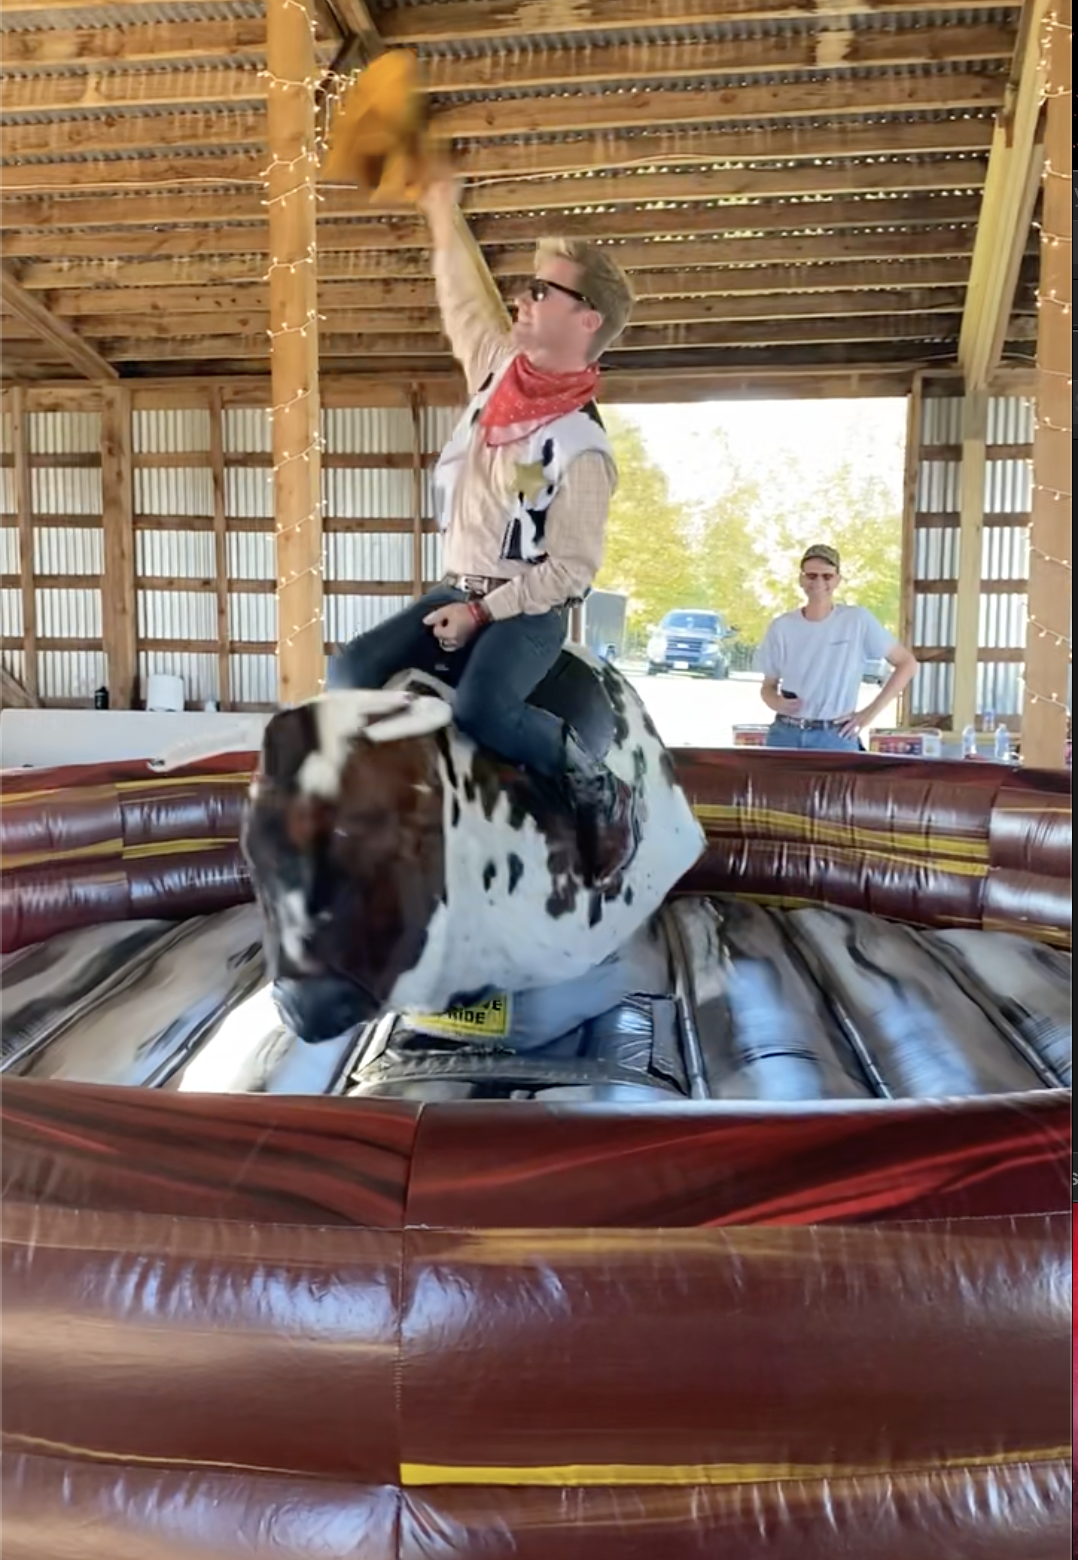 Mechanical Bull Rentals Nashville TN